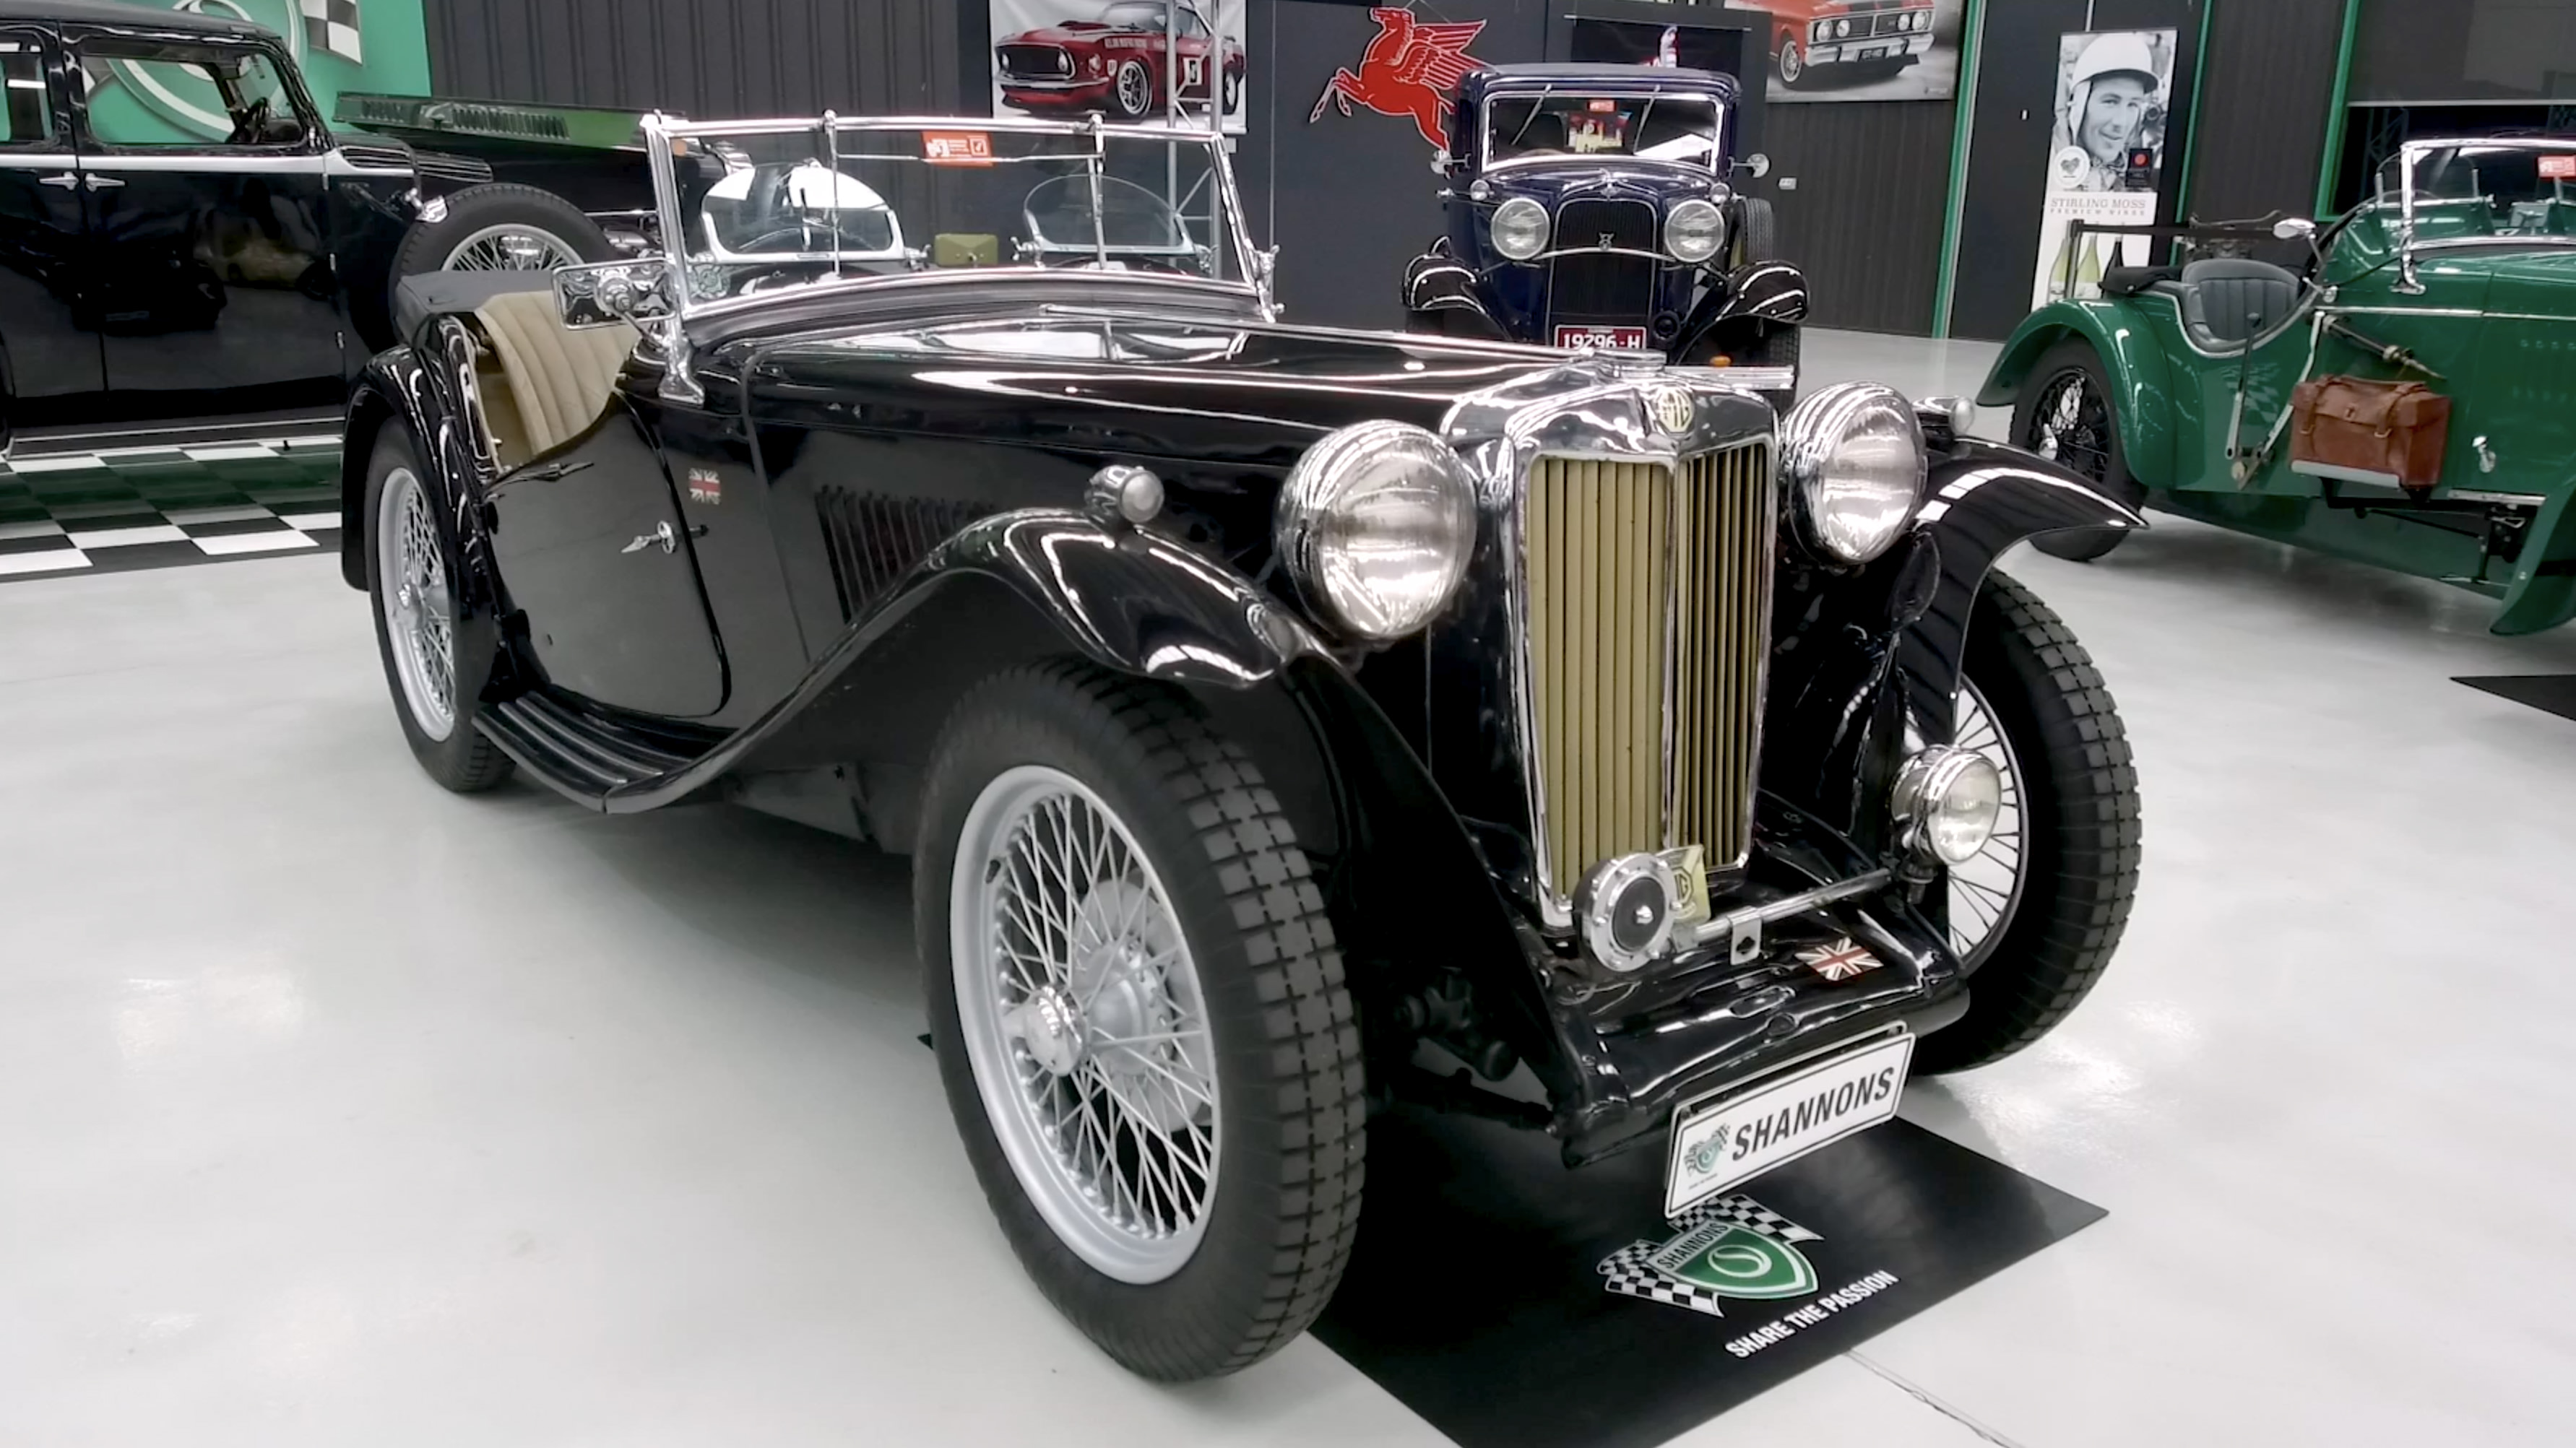 1946 MG TC 1250 Roadster - 2020 Shannons Spring Timed Online Auction